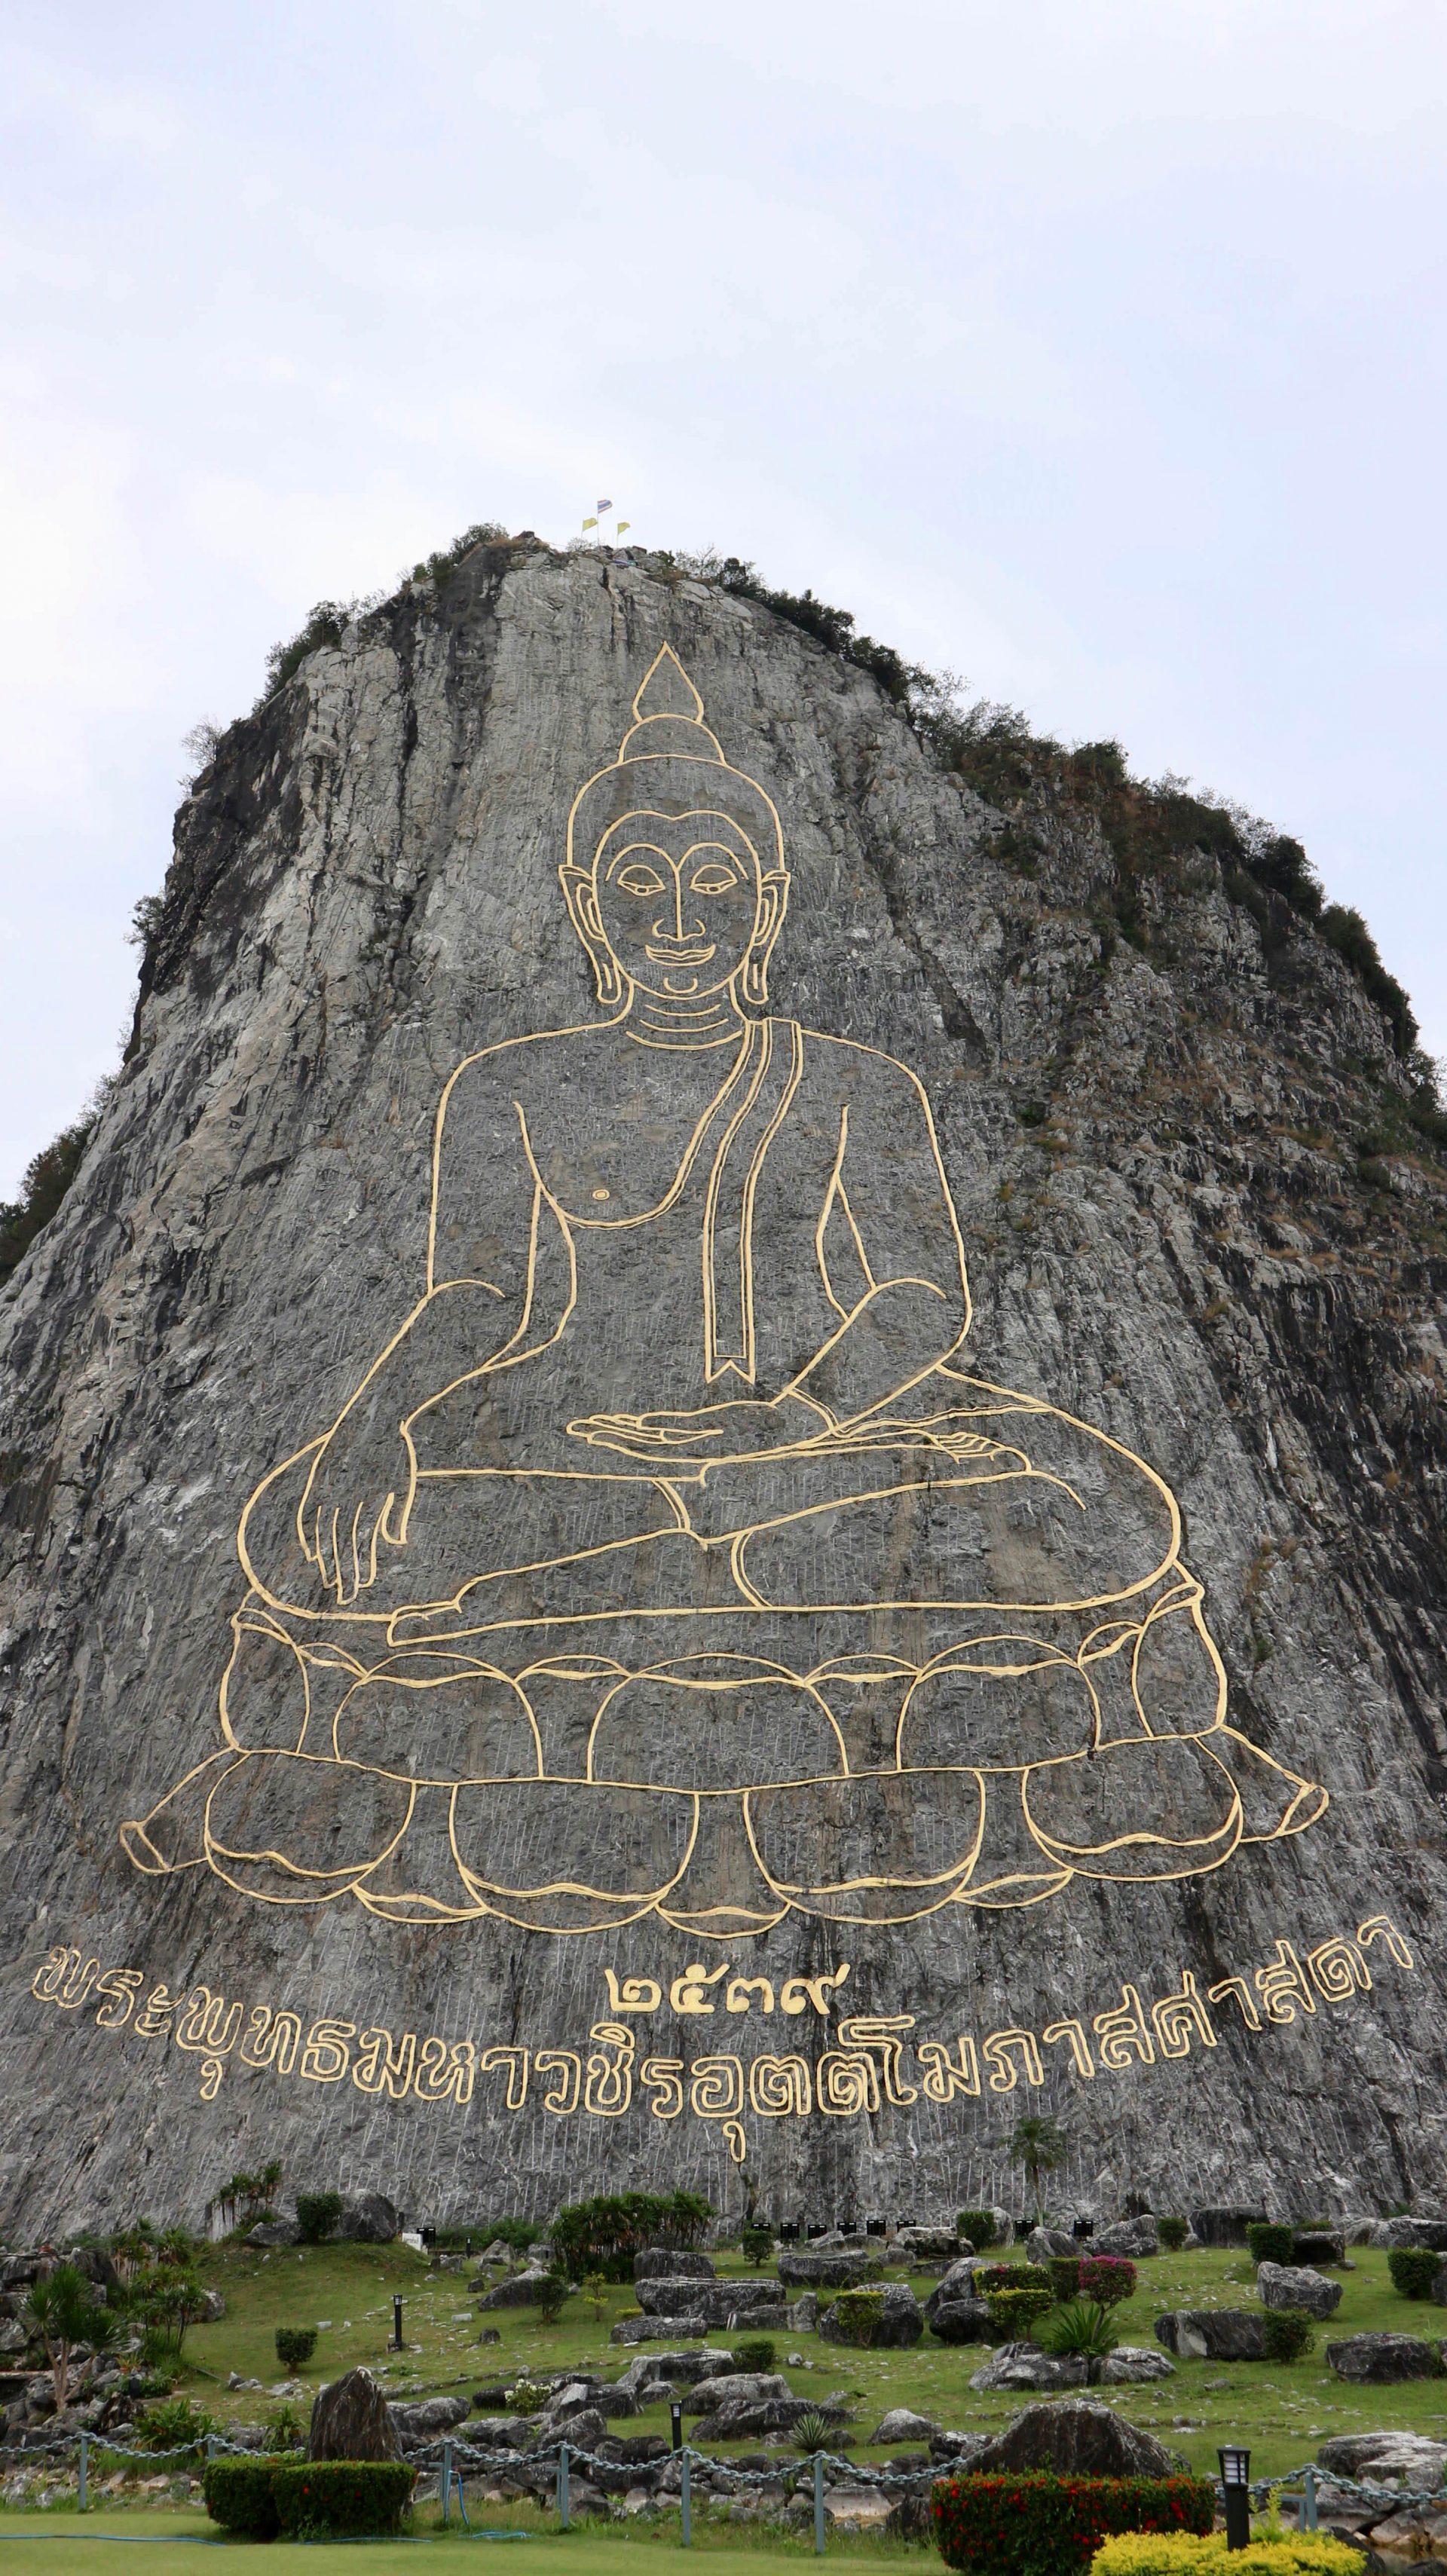 Khao Chee Chan with golden Buddha image sculptured on, a destination in my Bangkok and Pattaya trip.